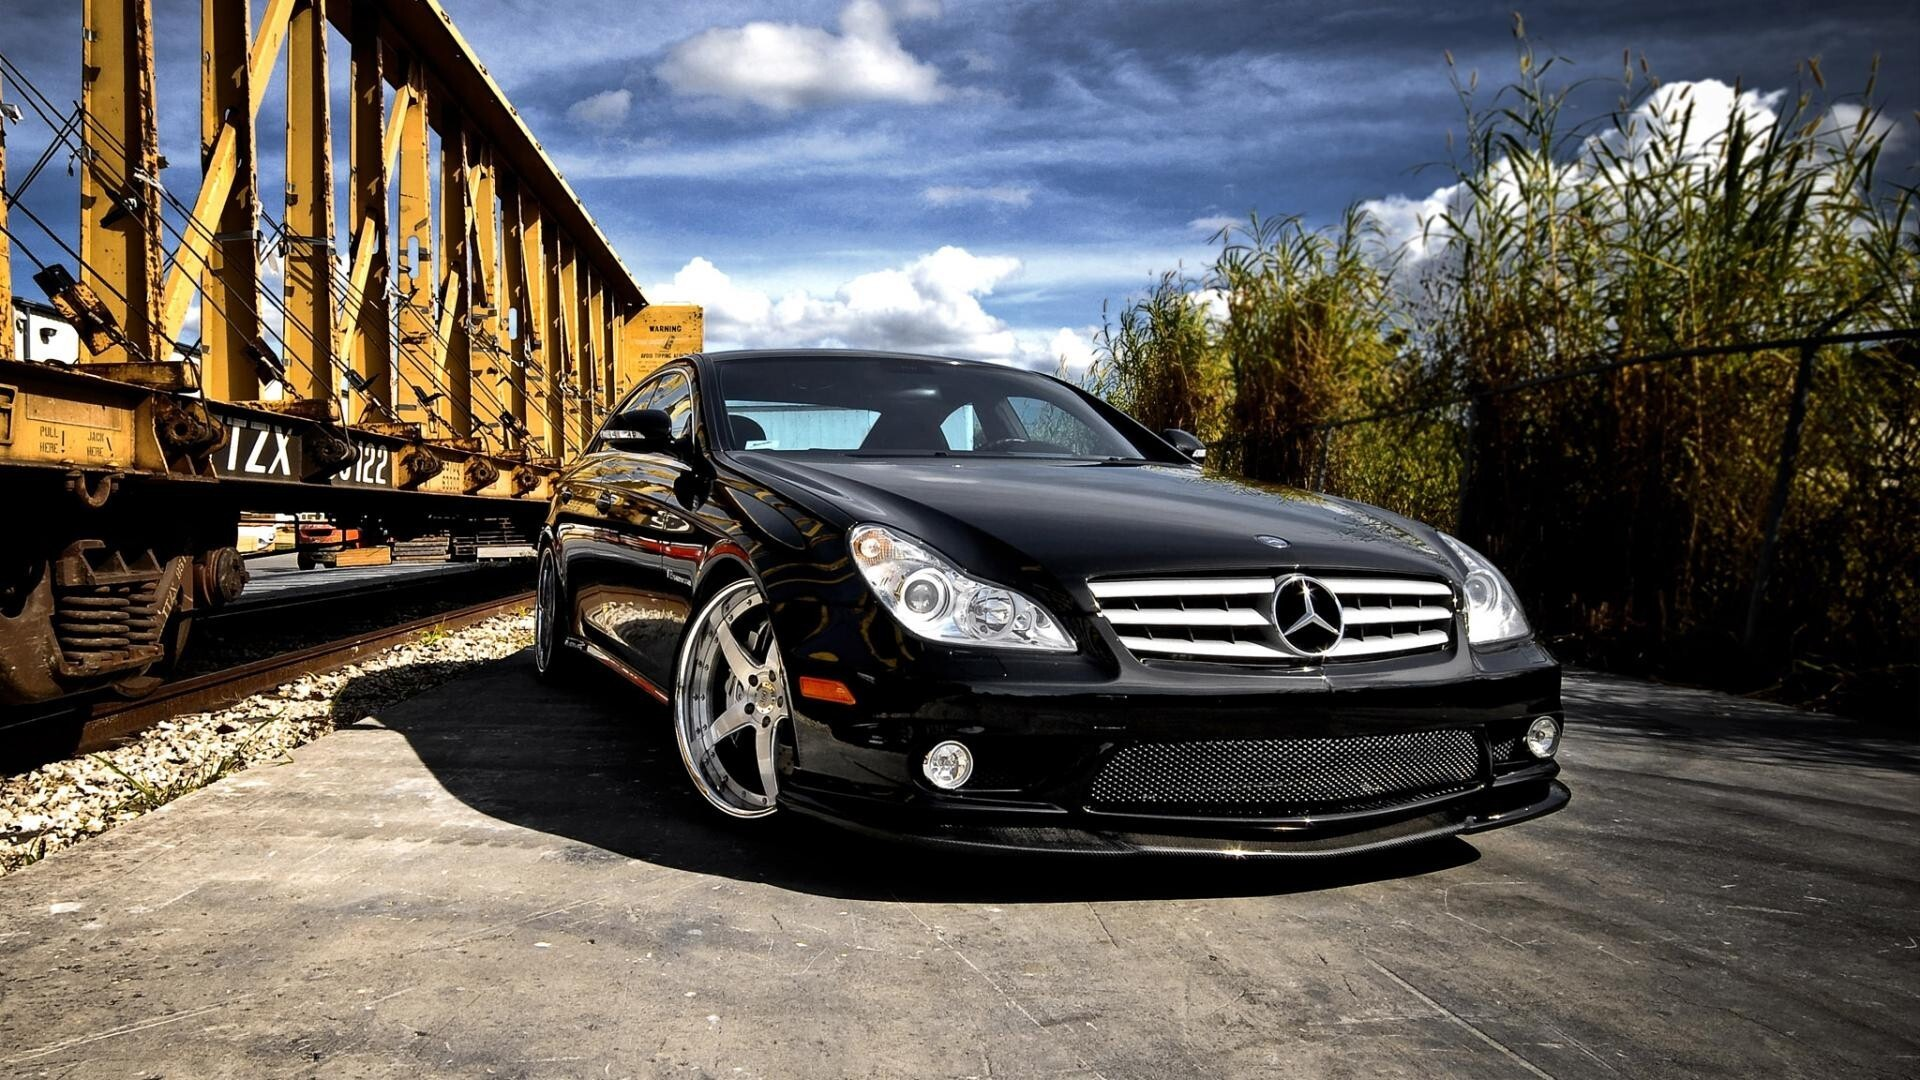 Black Mercedes Benz Cls Hd Car Wallpapers Hd Wallpapers